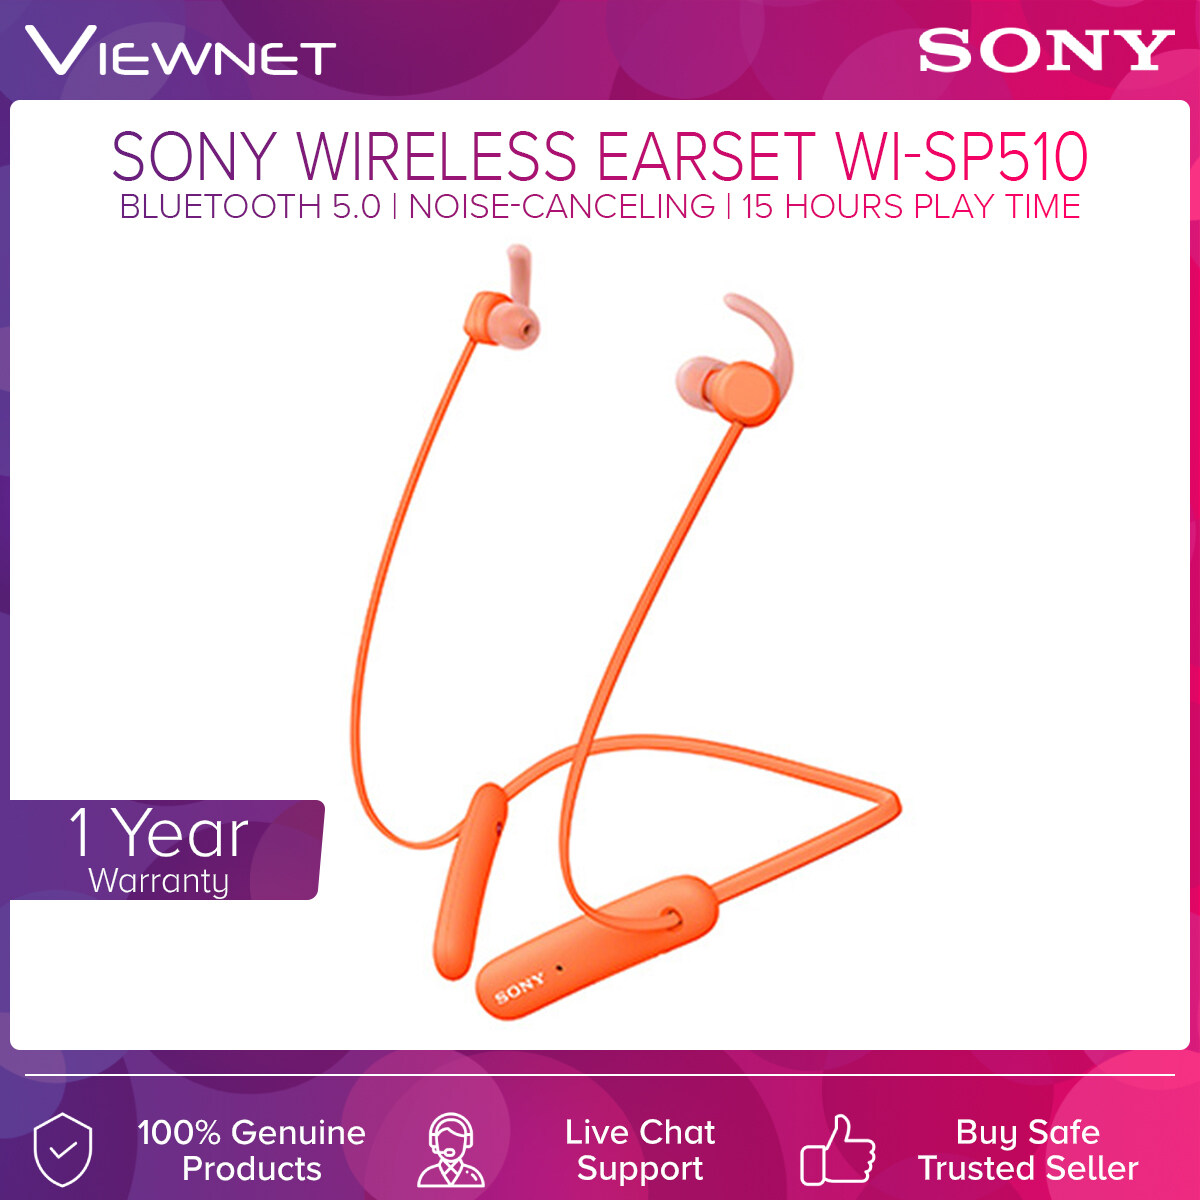 Sony Wireless Headphones For Sports WI-SP510 with Bluetooth 5.0 Connection, 15 Hours Battery Life, IPX5 Rating, Extra Bass, Voice Assistant Compatible